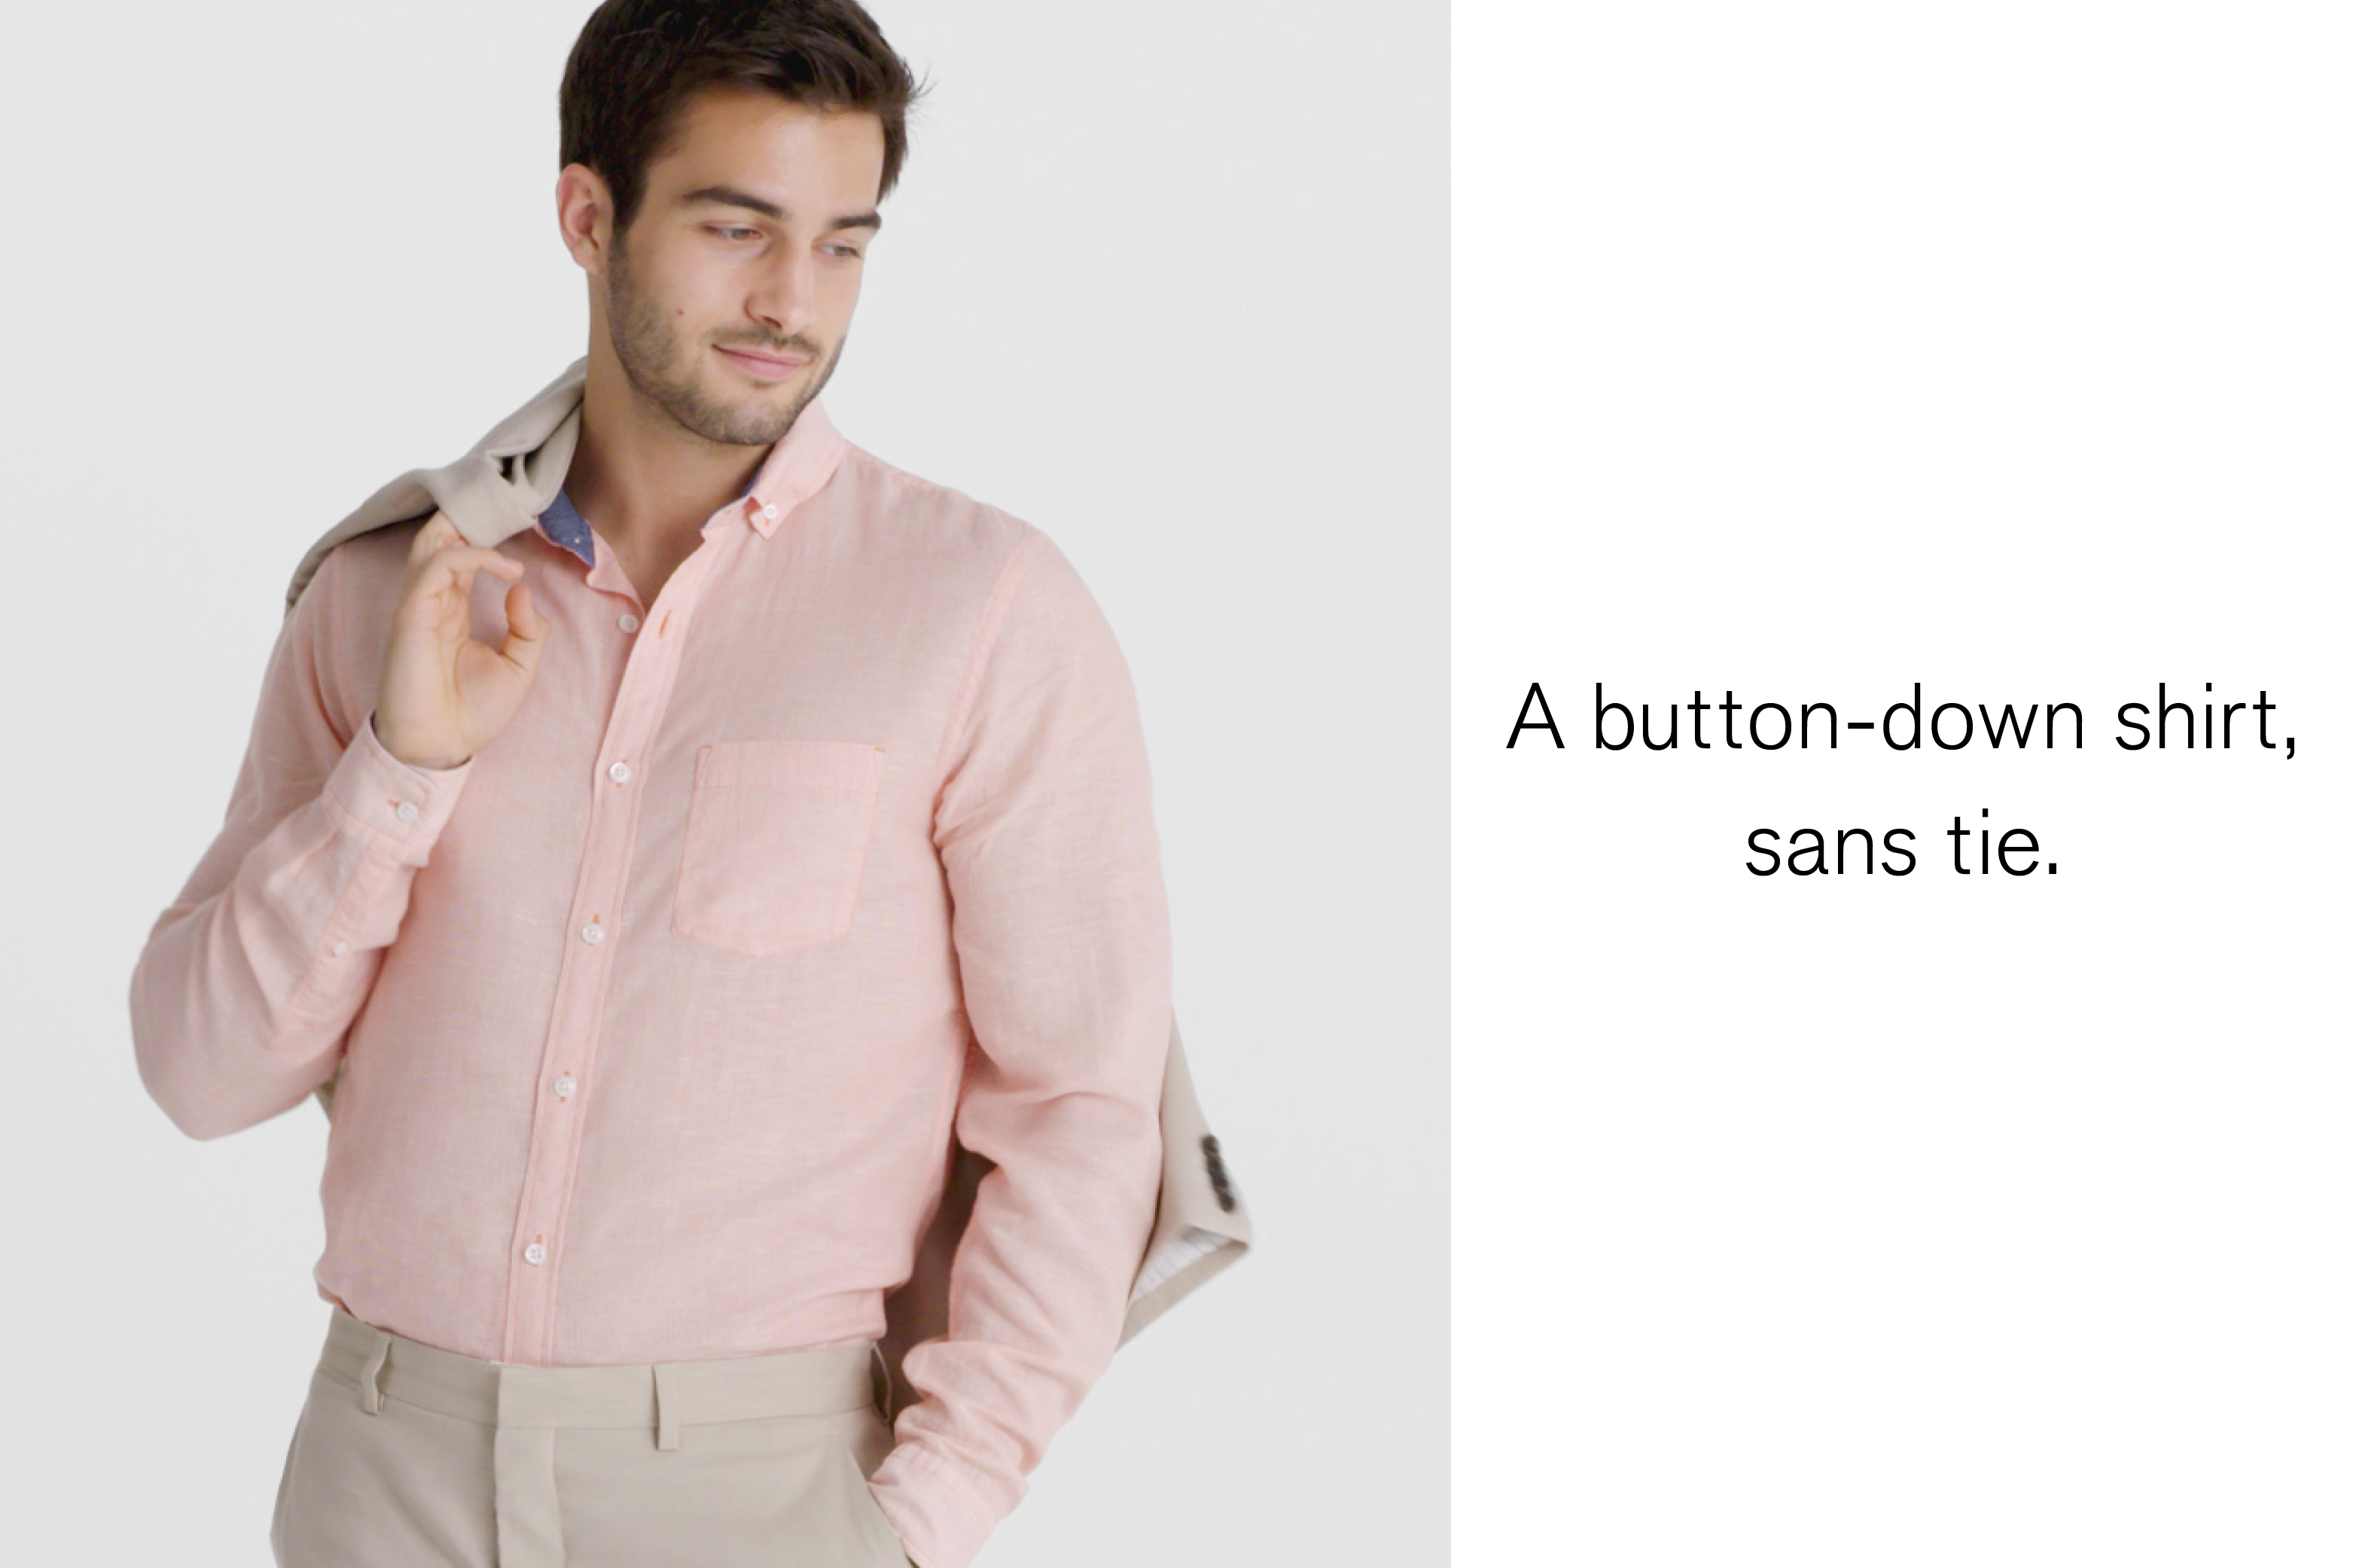 a-button-down-shirt-sans-tie